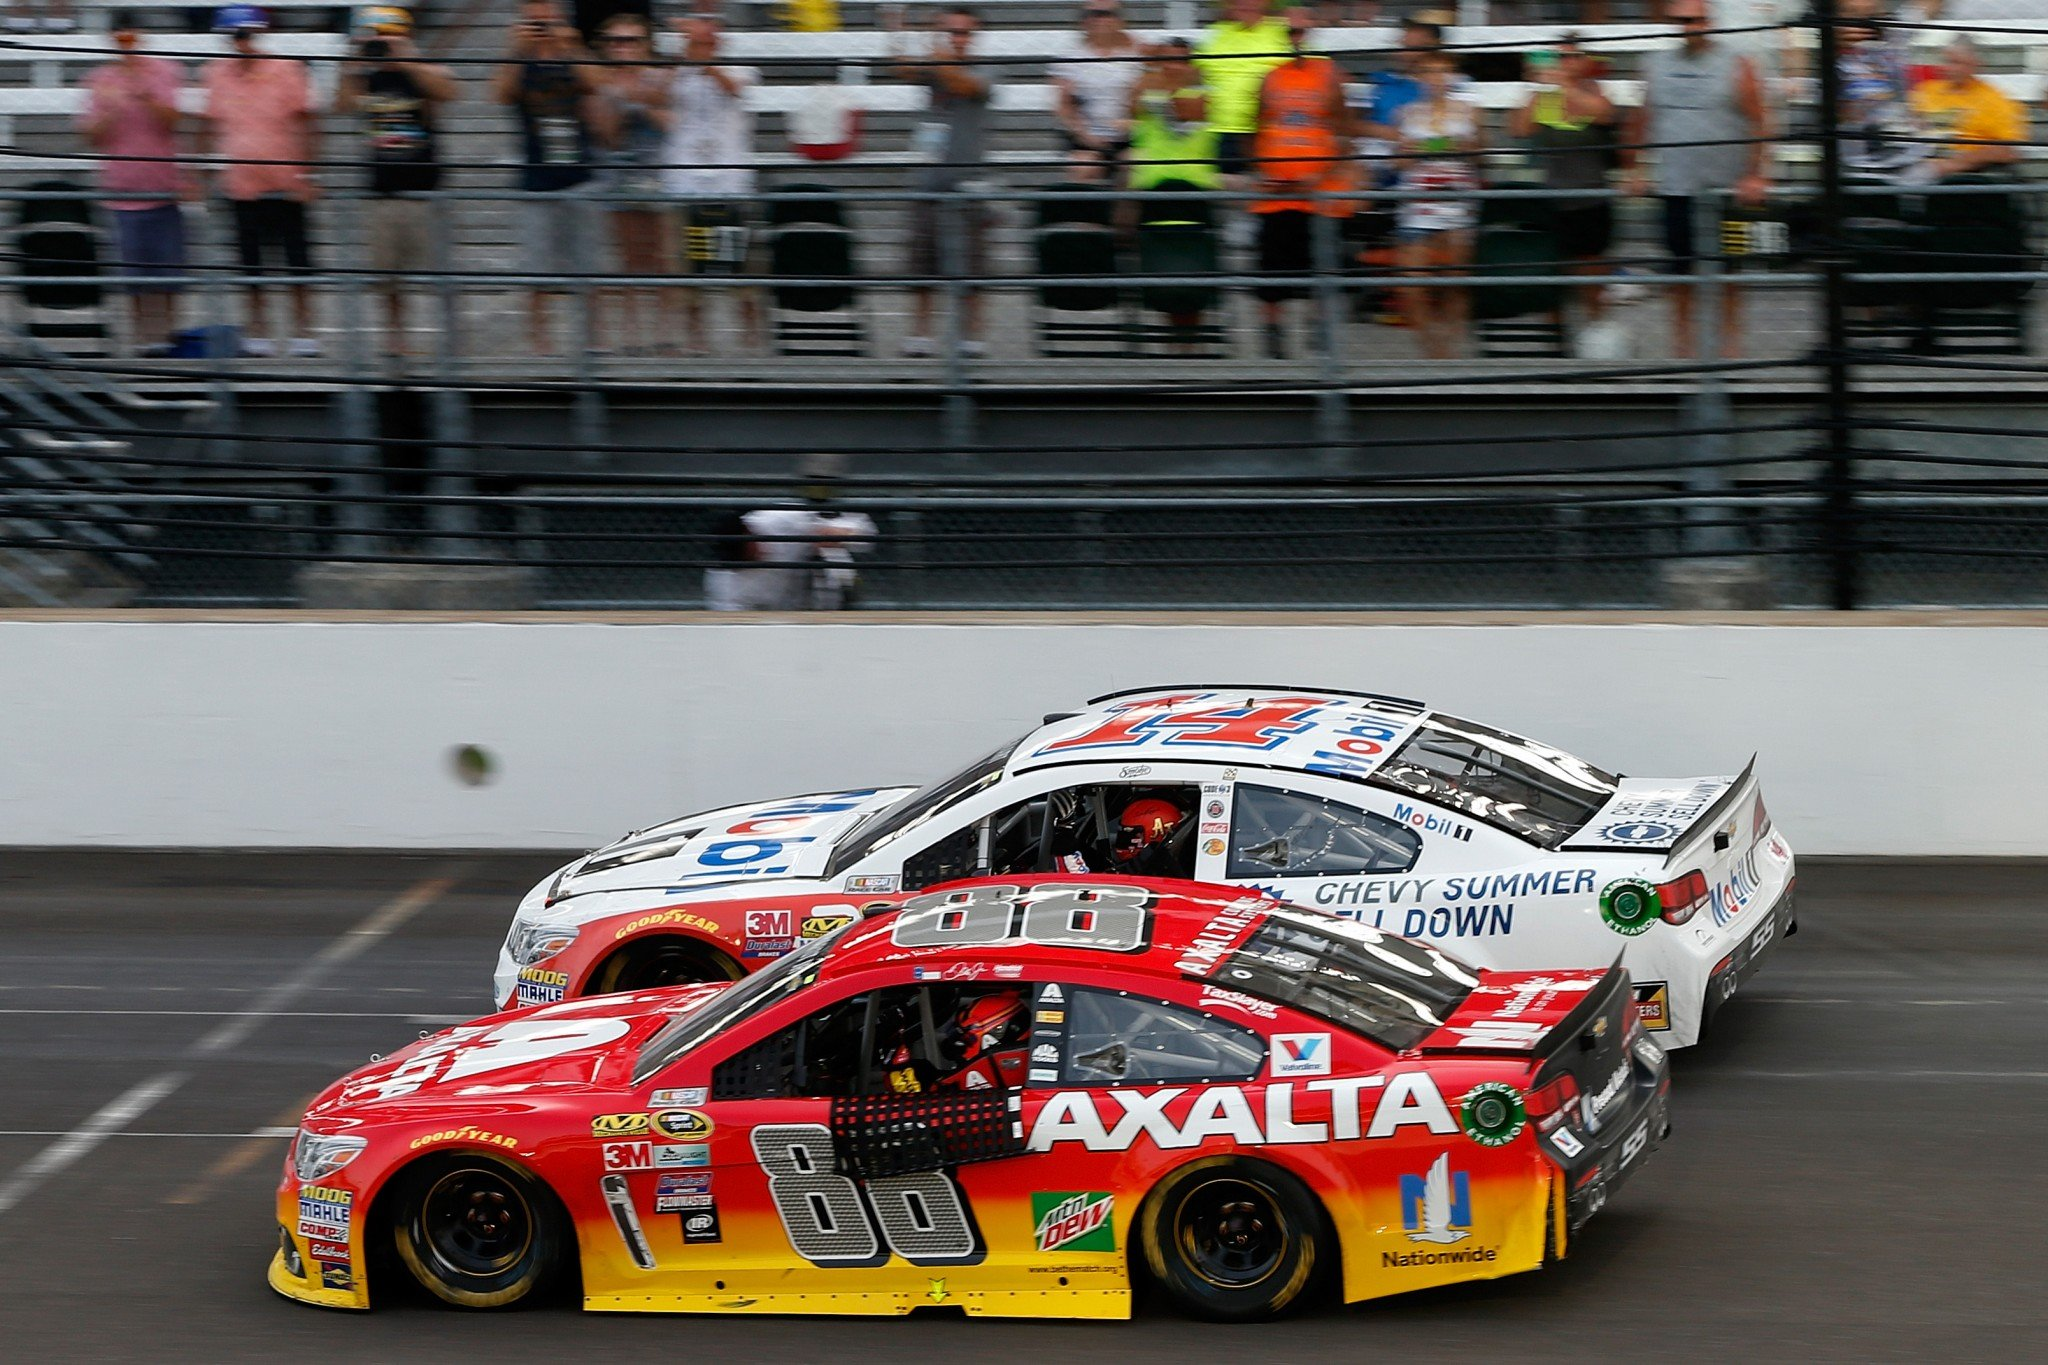 Tony Stewart and Jeff Gordon took a lap after Sunday's race (Getty).